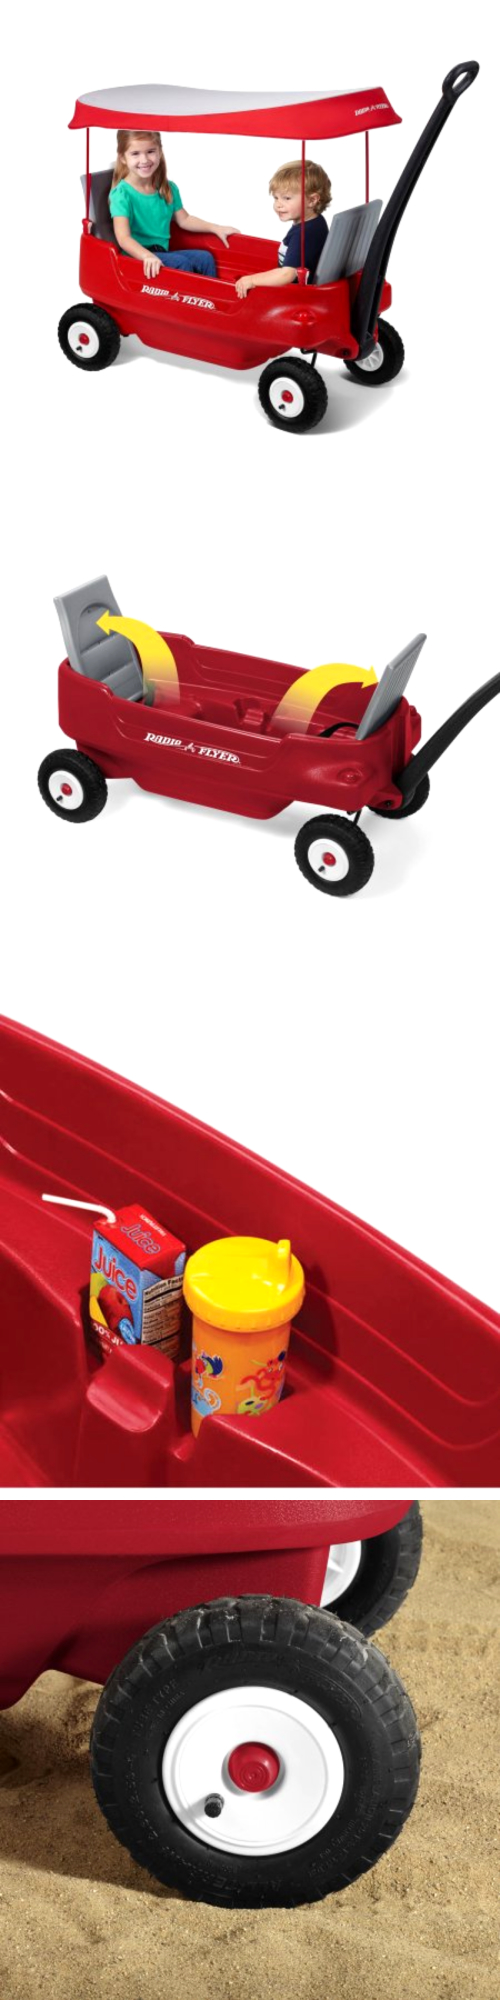 1970-Now 11746 Radio Flyer Deluxe All-Terrain Pathfinder Wagon With Canopy -  sc 1 st  Pinterest & 1970-Now 11746: Radio Flyer Deluxe All-Terrain Pathfinder Wagon ...